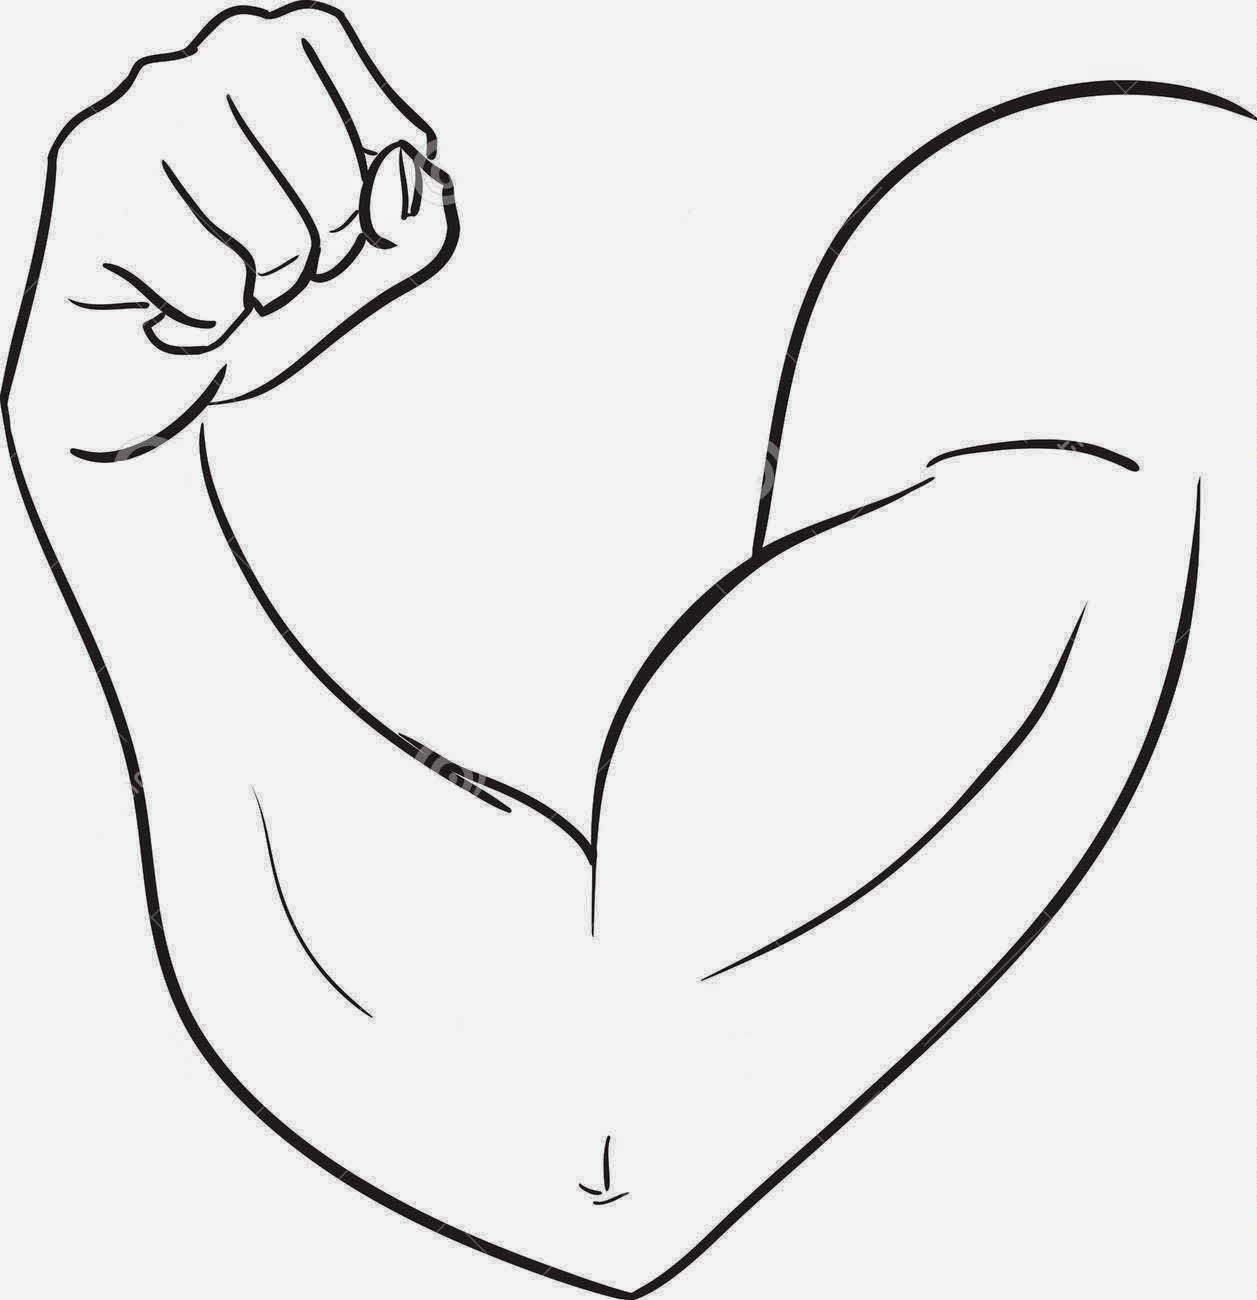 arm coloring pages - photo#6